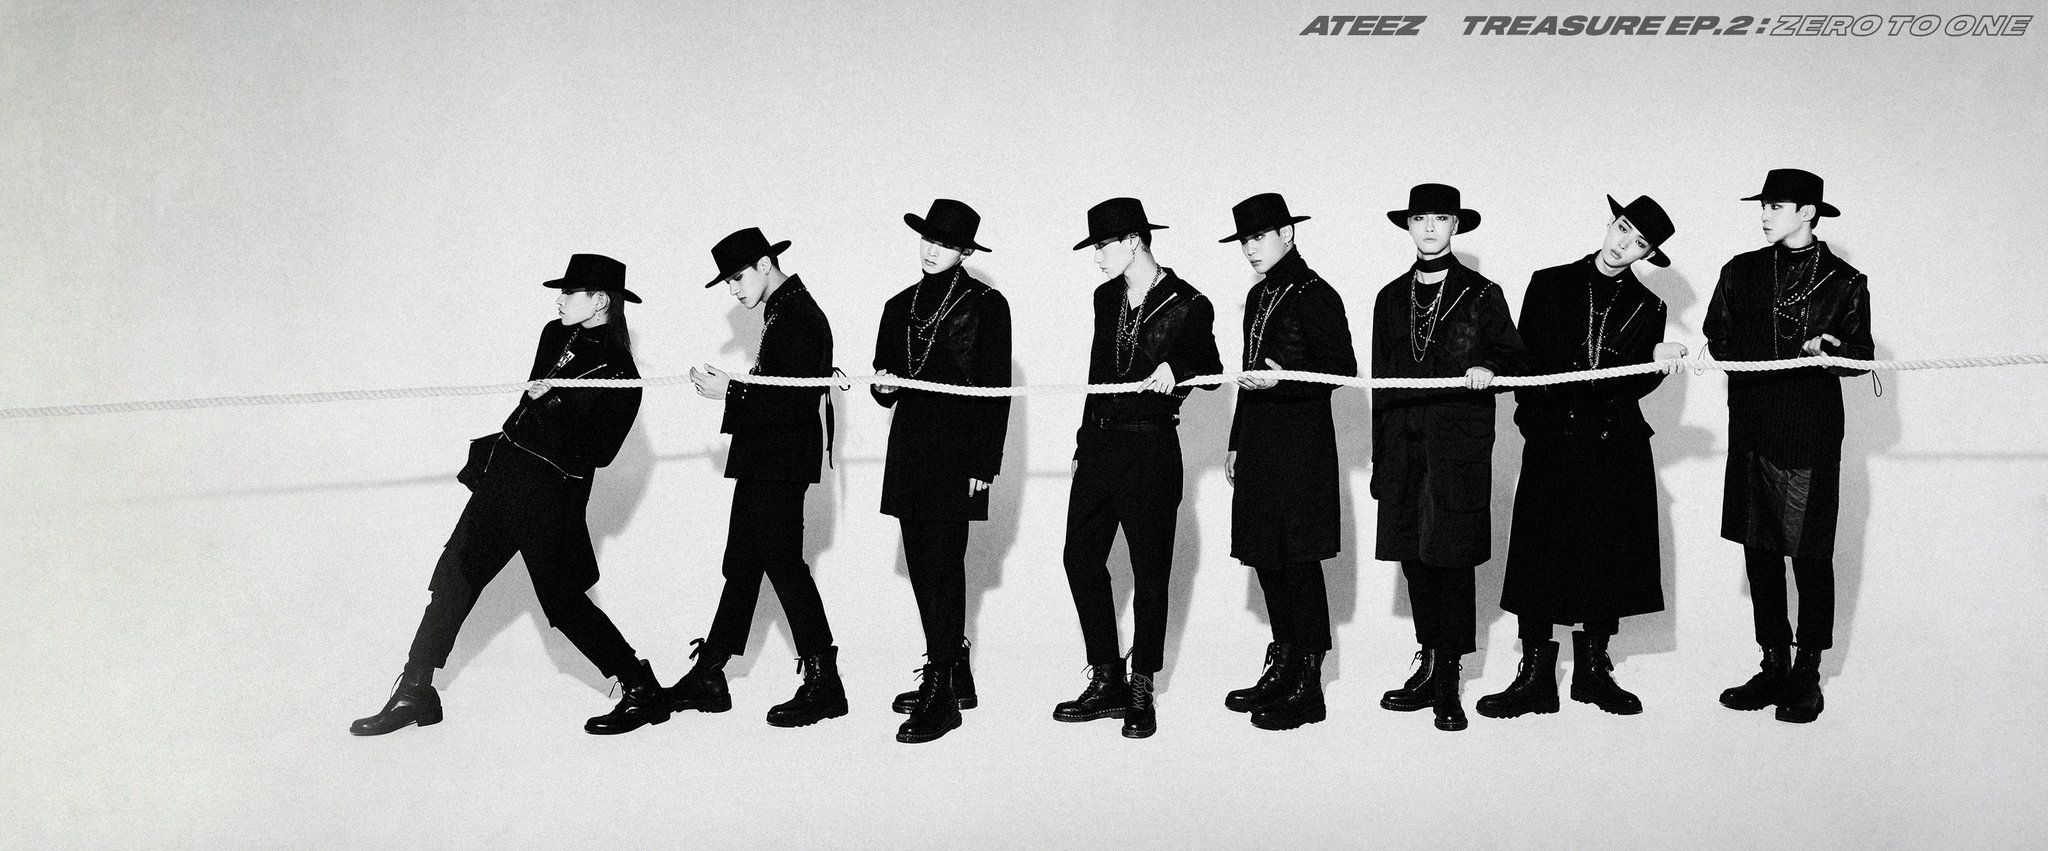 ATEEZ TREASURE EP.2 Zero To One 'ATEEZ VS ATEEZ' ALBUM